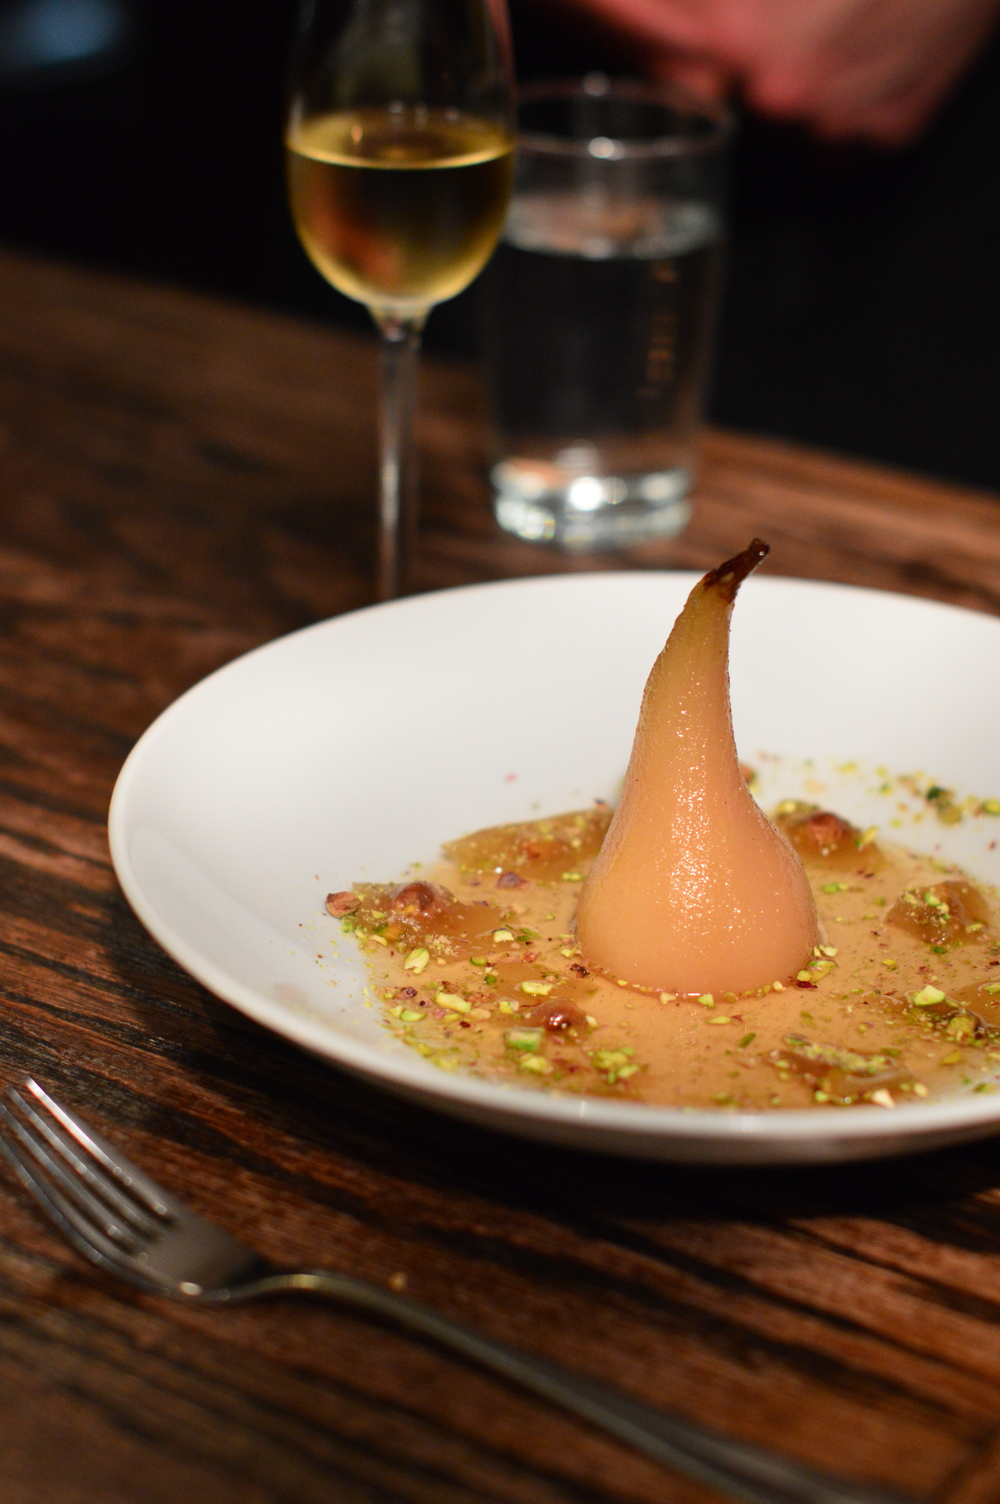 For dessert! Poached pear with muscat syrup and pistachio brittle. Paired with Strewn Select Late Harvest Vidal.